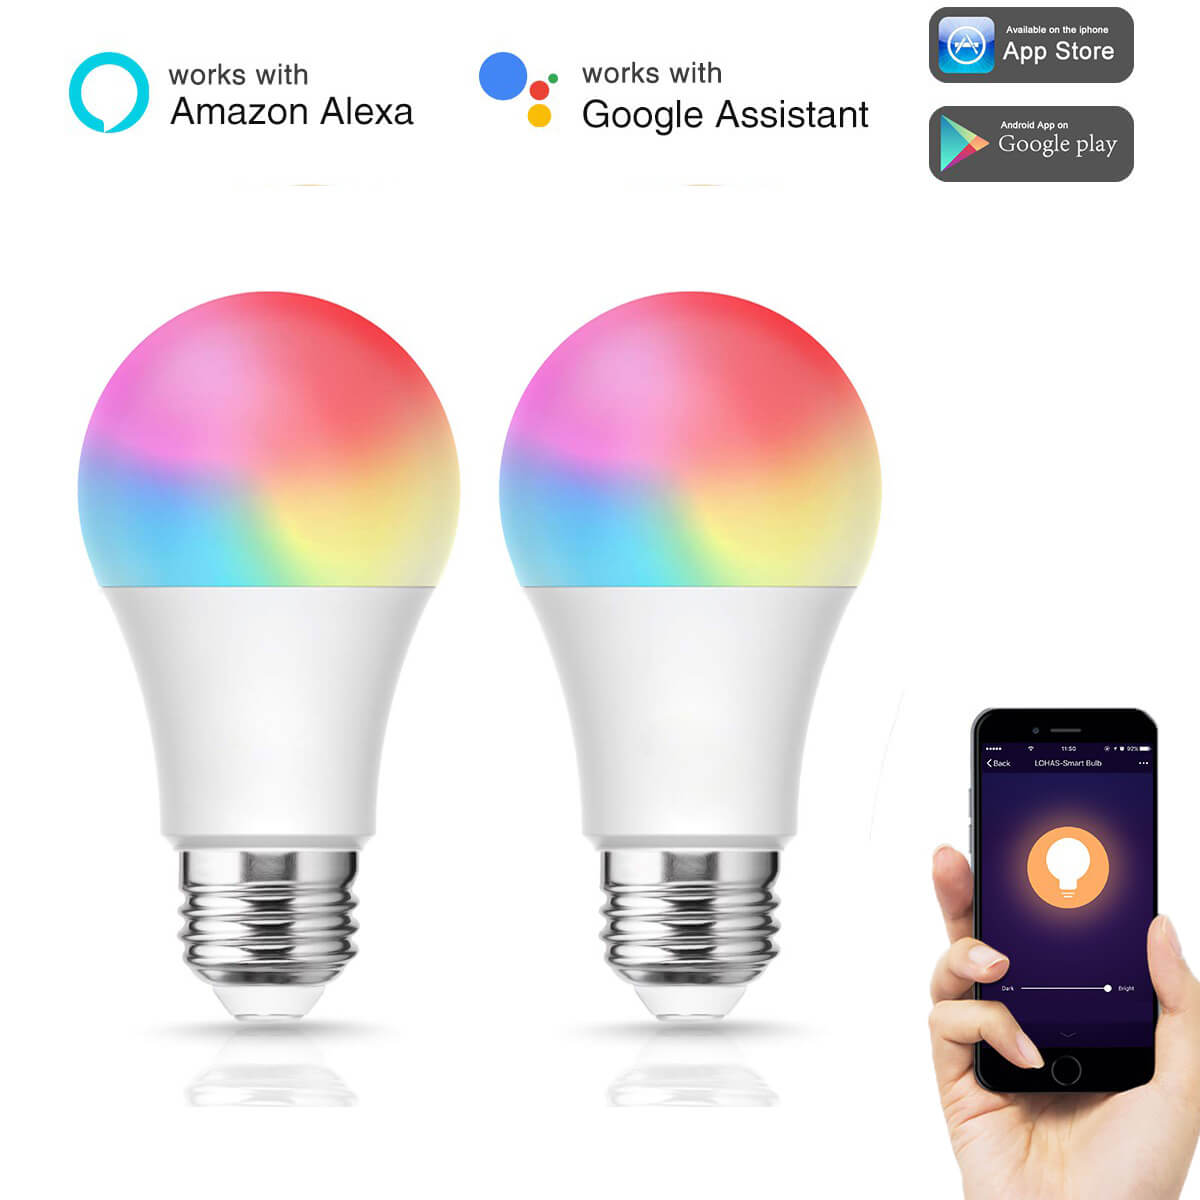 A19 Color Changing Light Bulb, 8W(60W Equivalent) Tunable White 2700K-6000K+RGB Smart Light Bulbs, 650LM, 2 Pack